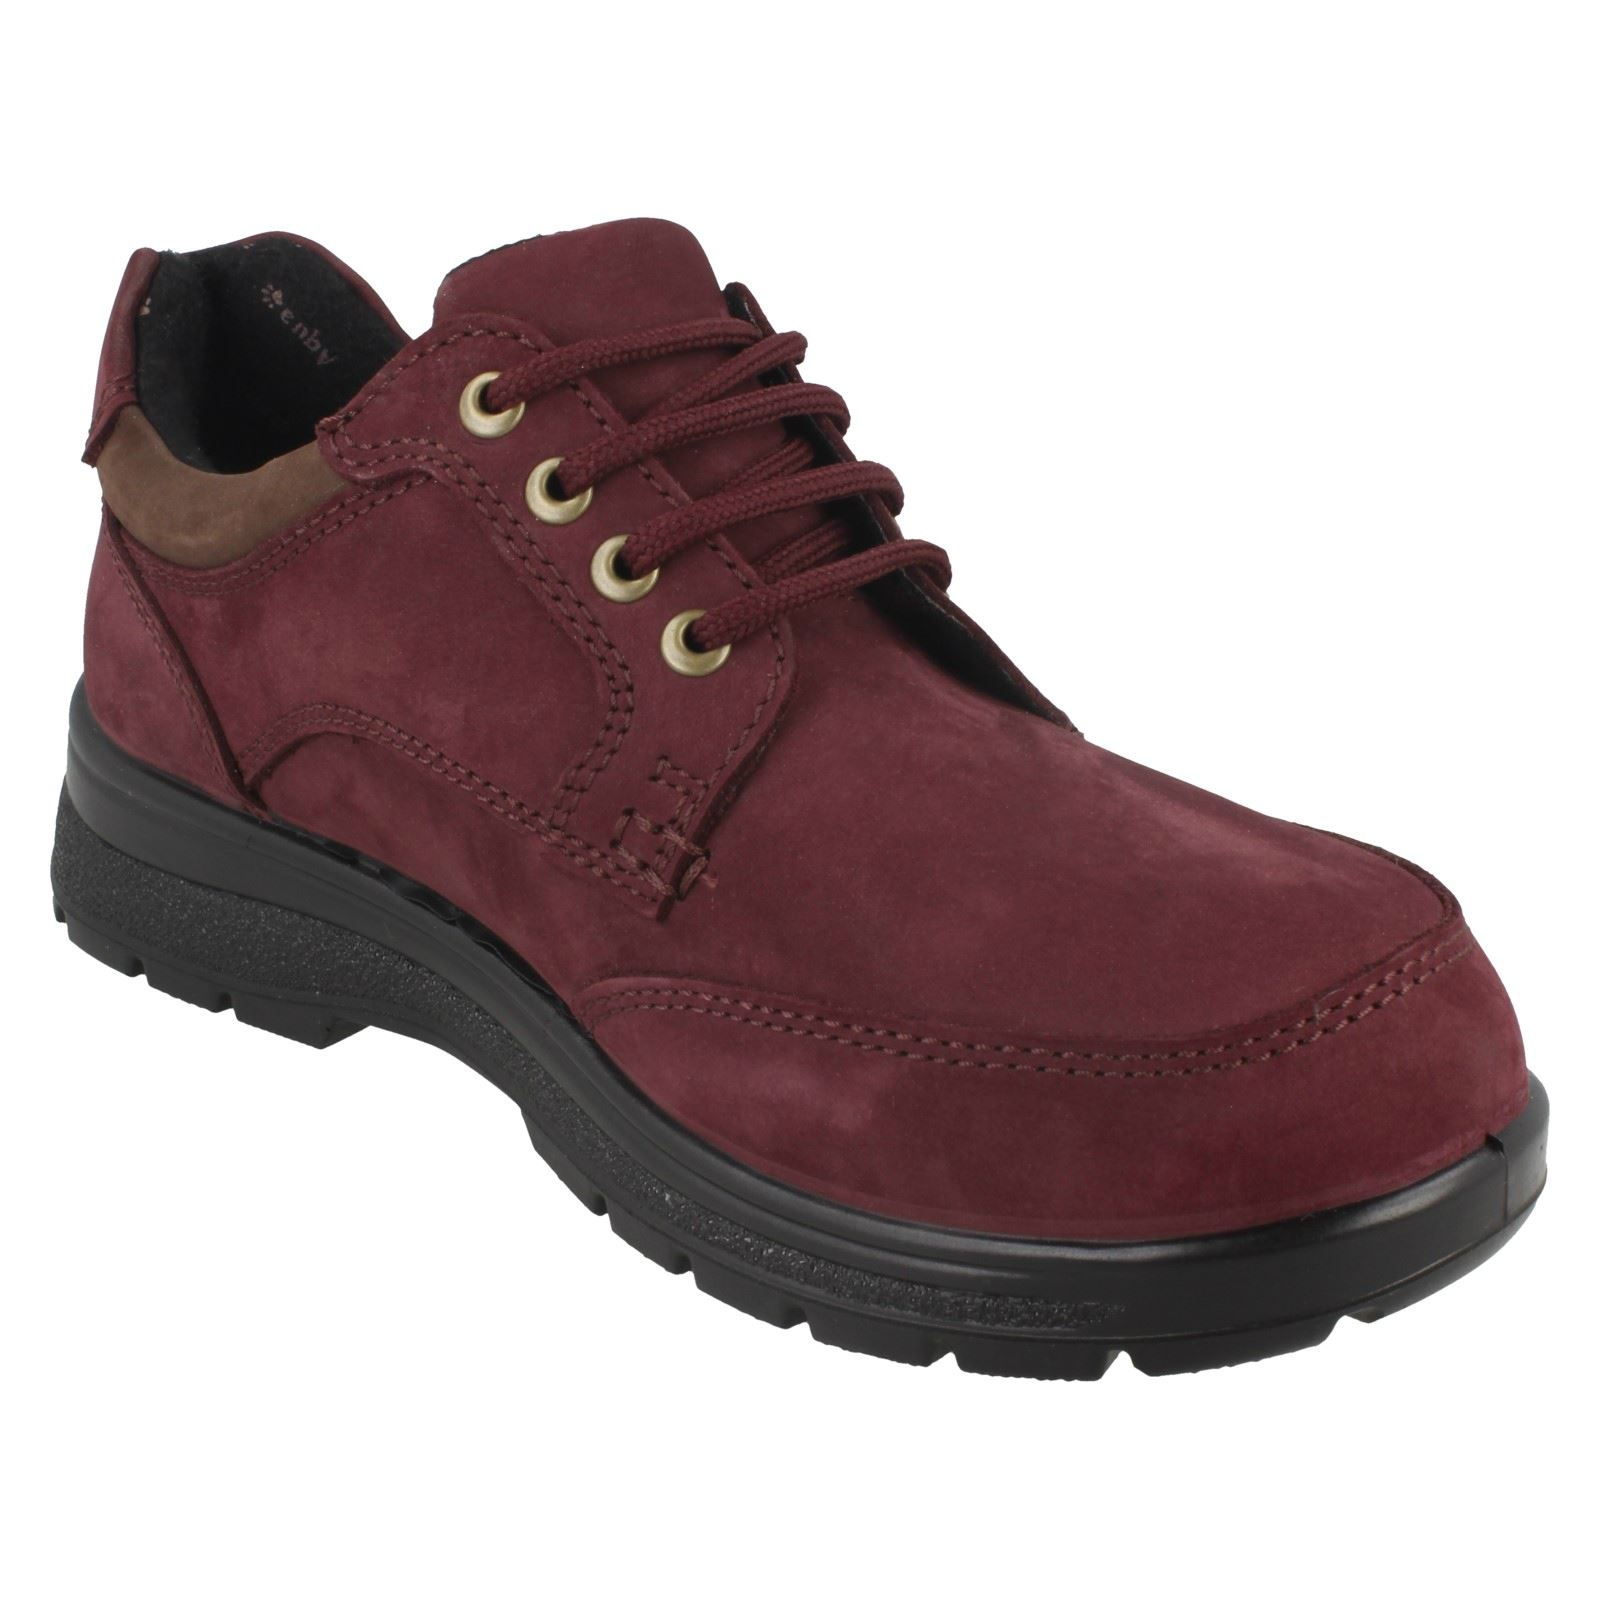 Ladies Padders 'Peak' Wide Fitting Fitting Fitting Casual shoes 226482